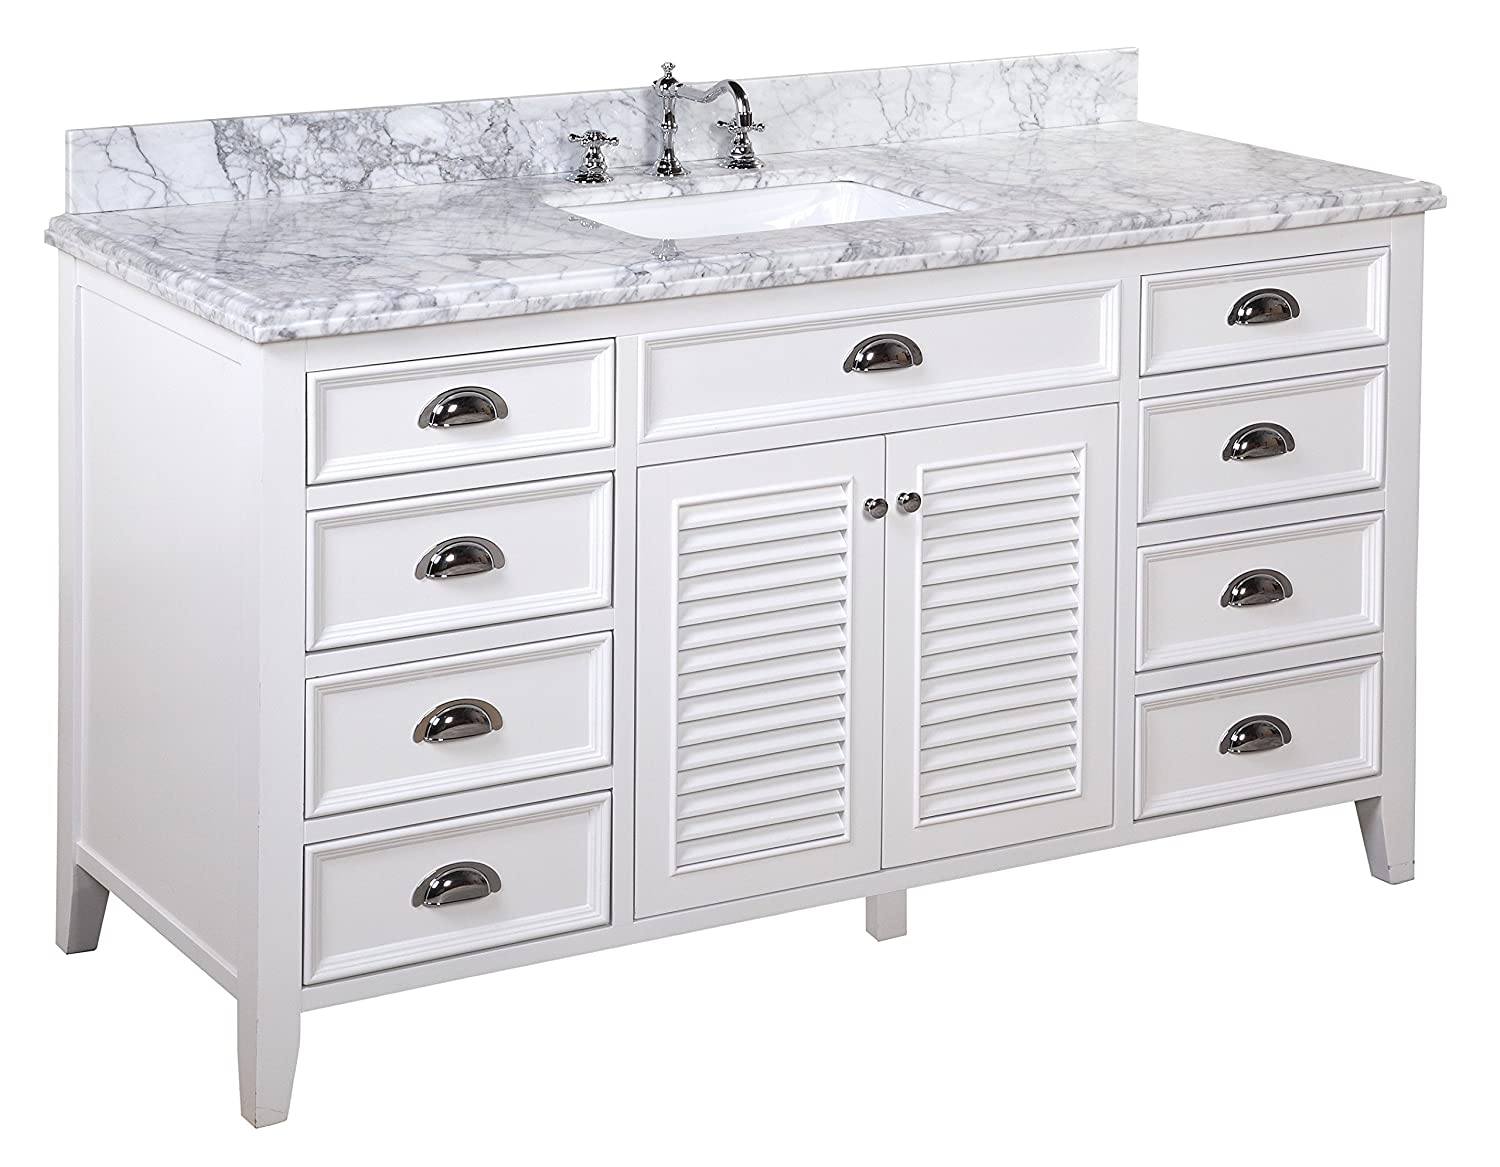 Kitchen Bath Collection KBC SH601WTCARR S Savannah Single Sink Bathroom  Vanity With Marble Countertop, Cabinet With Soft Close Function And  Undermount ...